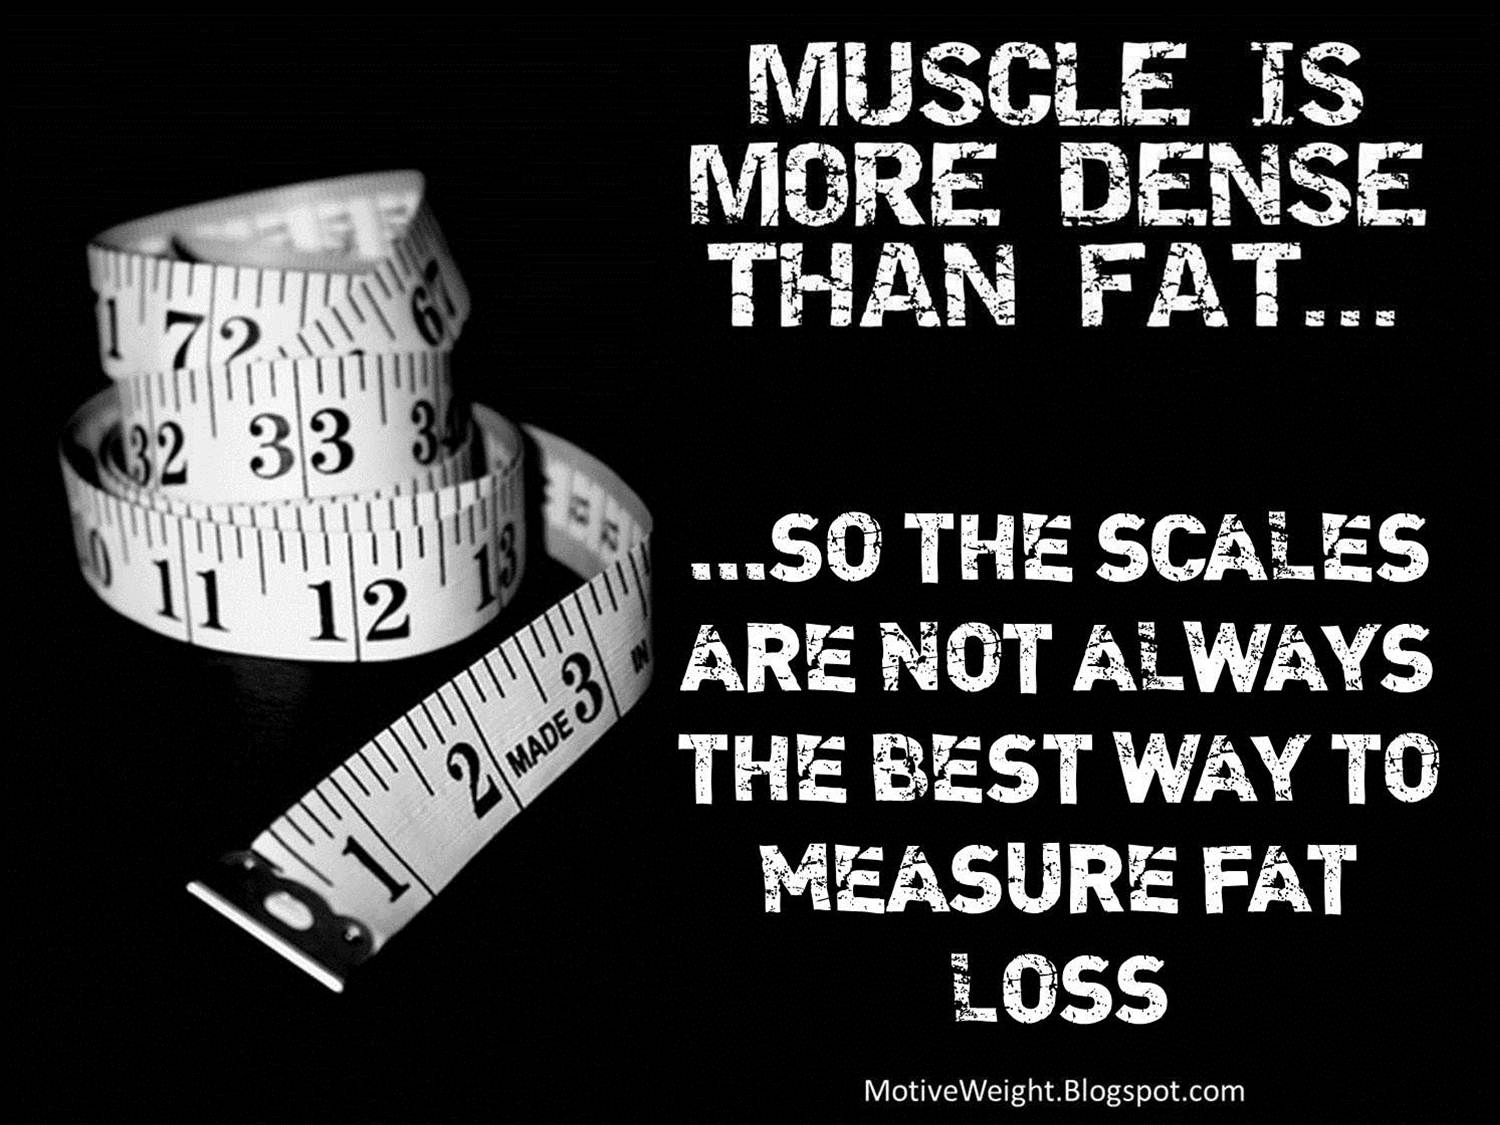 The-scales-are-not-the-only-way-to-measure-fat-loss.jpg